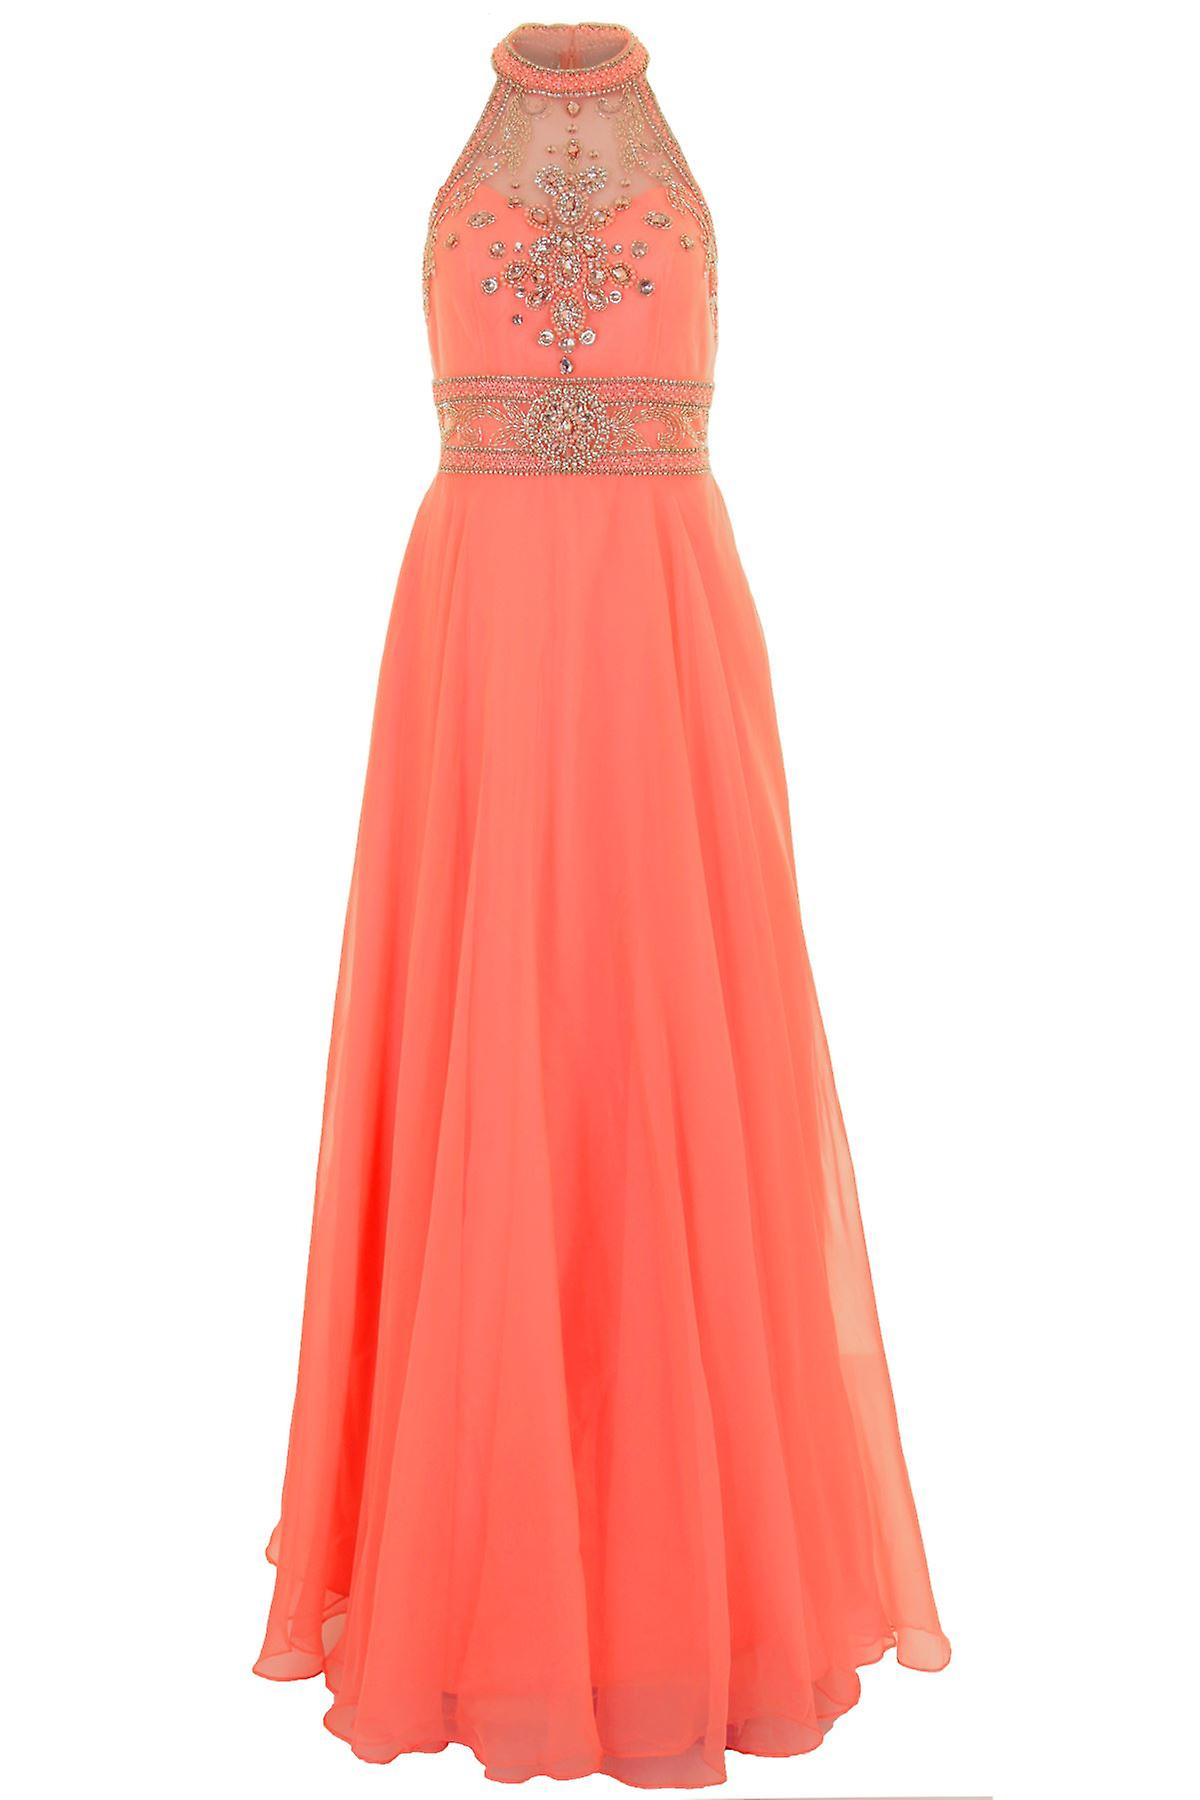 Long Sleeveless Chiffon Mesh Racer Back Maxi Party Prom Evening Gown Dress